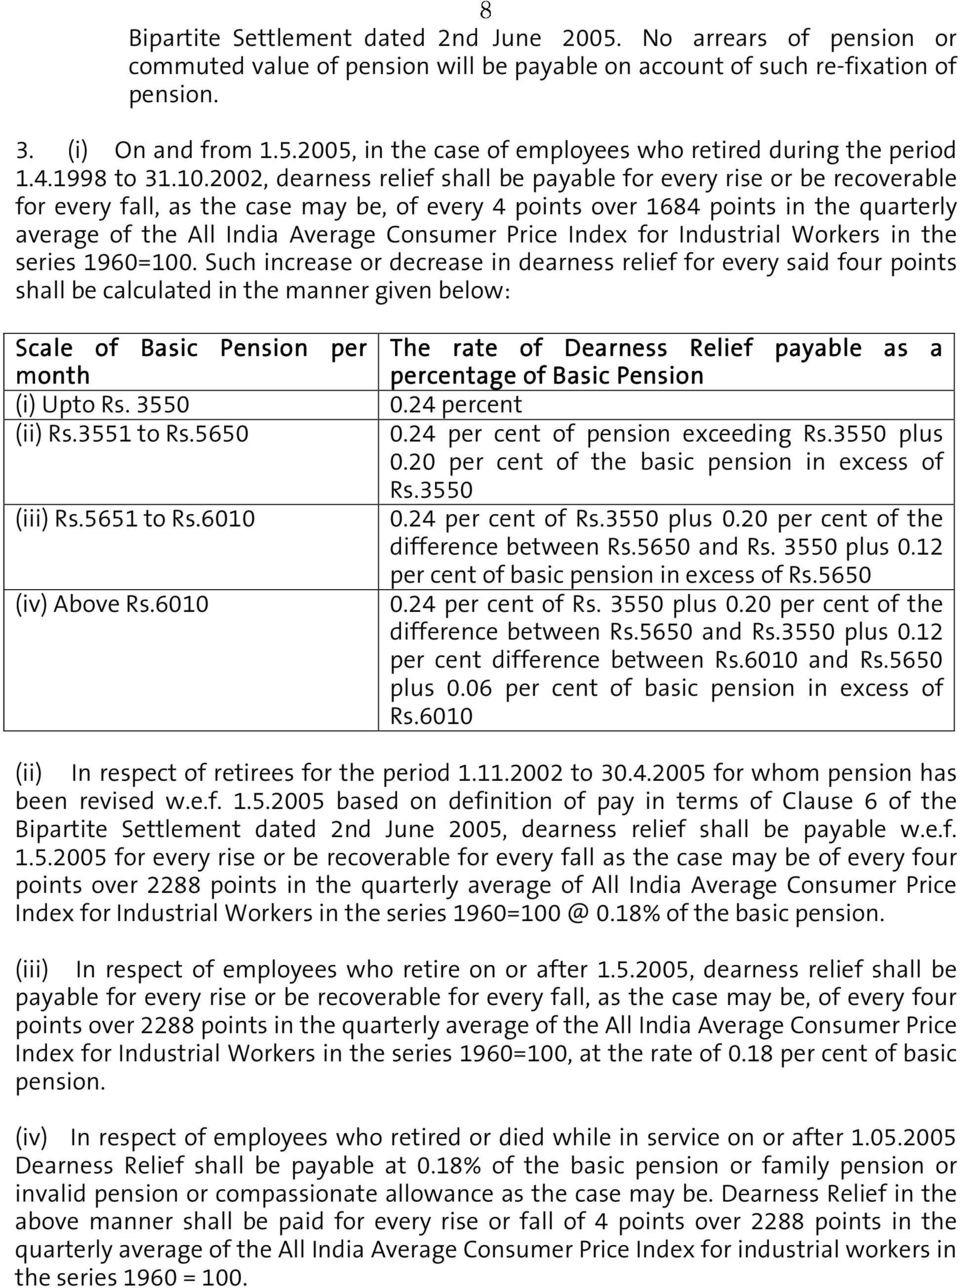 2002, dearness relief shall be payable for every rise or be recoverable for every fall, as the case may be, of every 4 points over 1684 points in the quarterly average of the All India Average